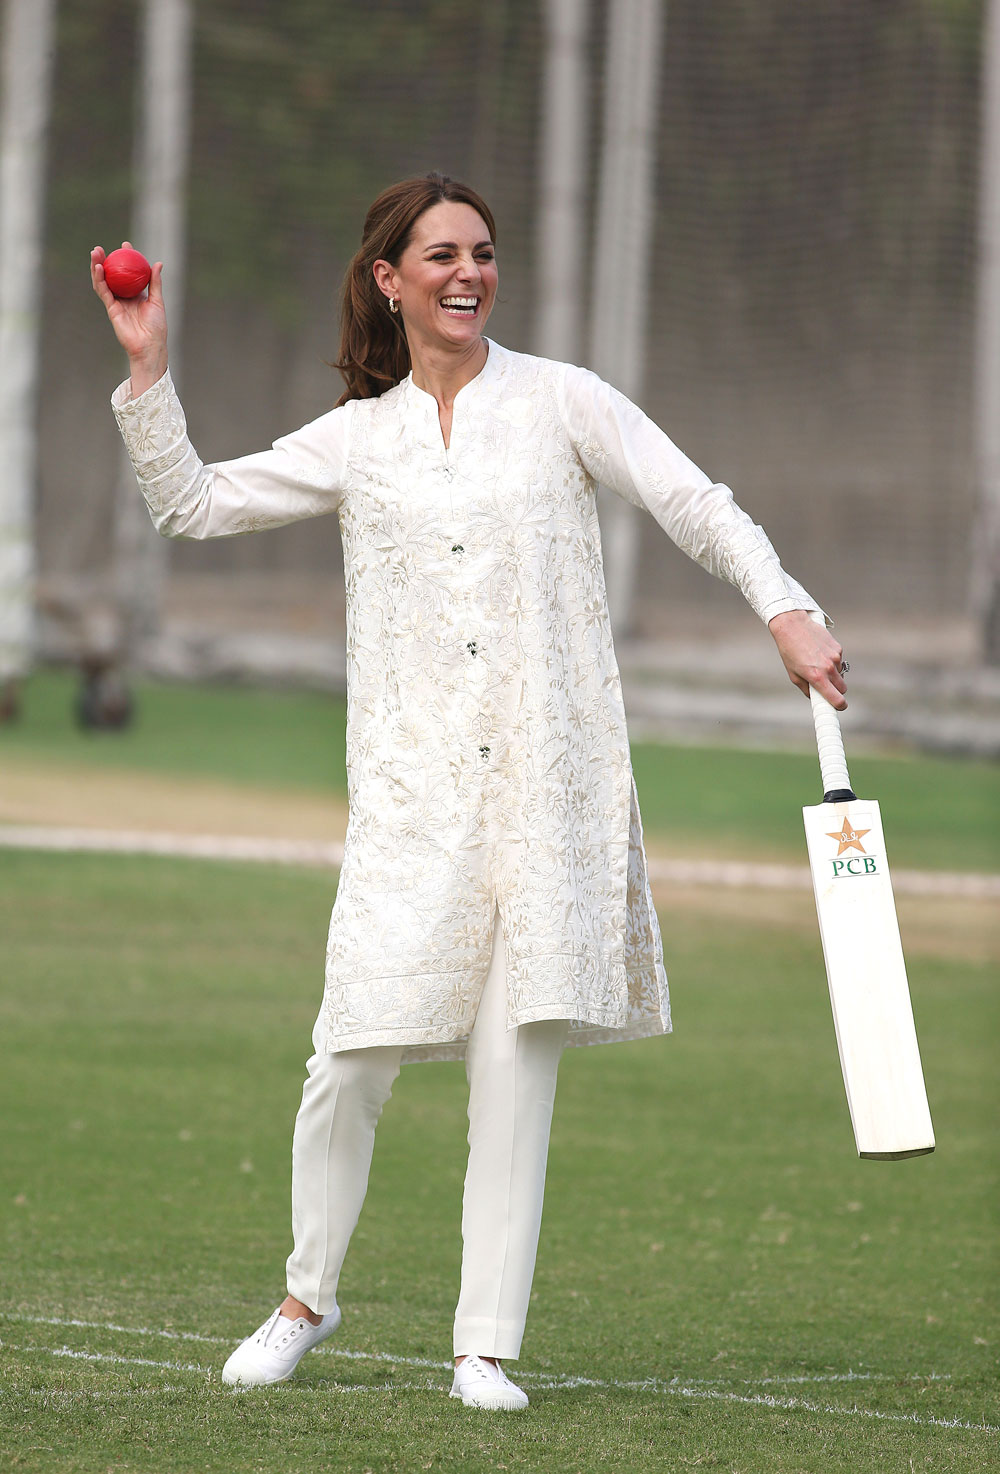 The duchess wore all-white to play cricket